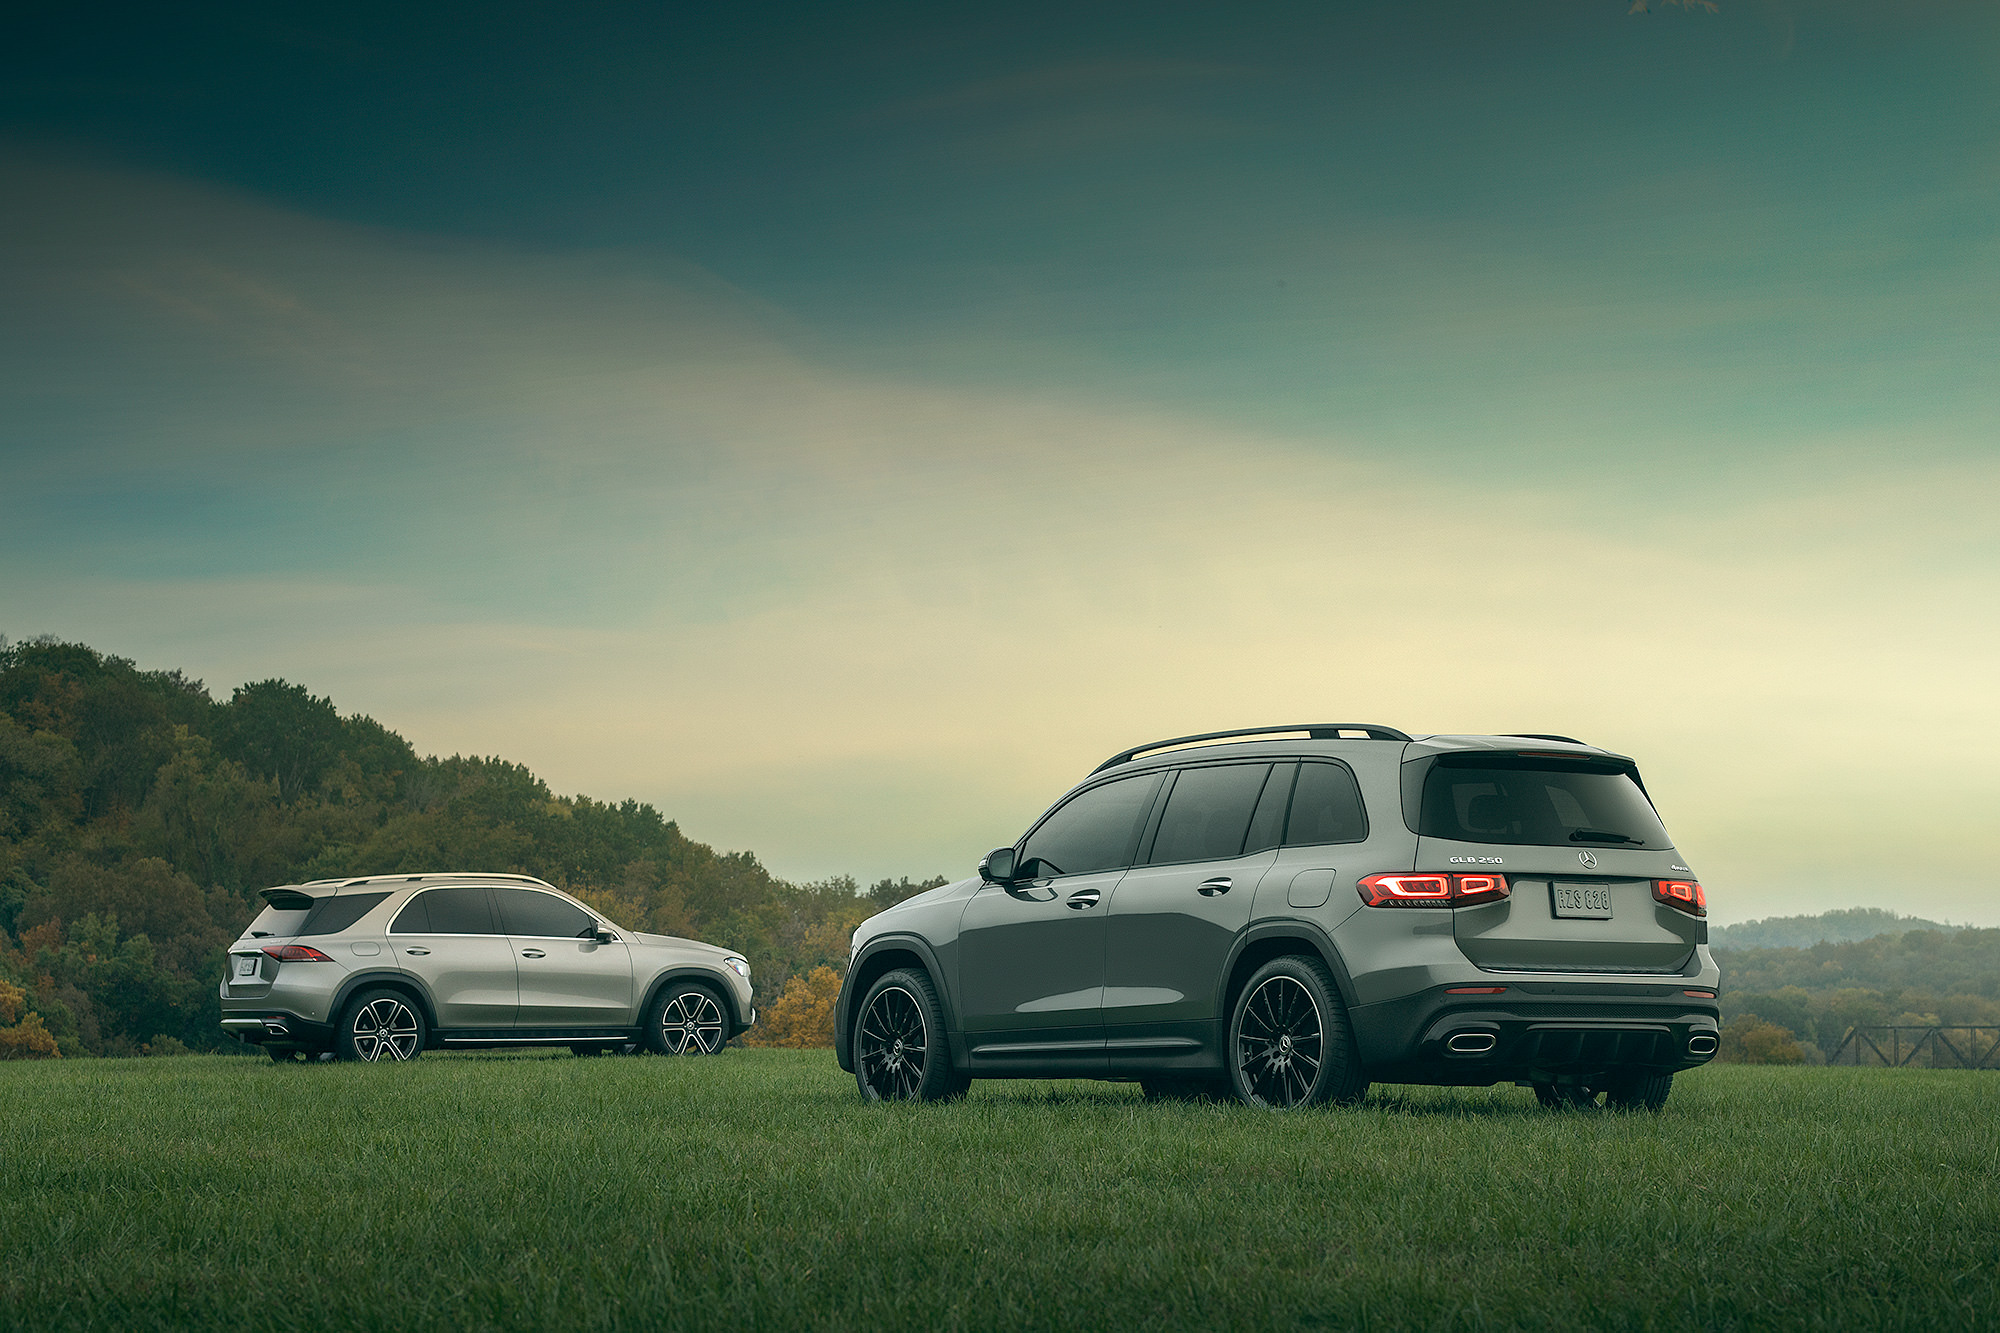 Two Mercedes-Benz SUV sunset